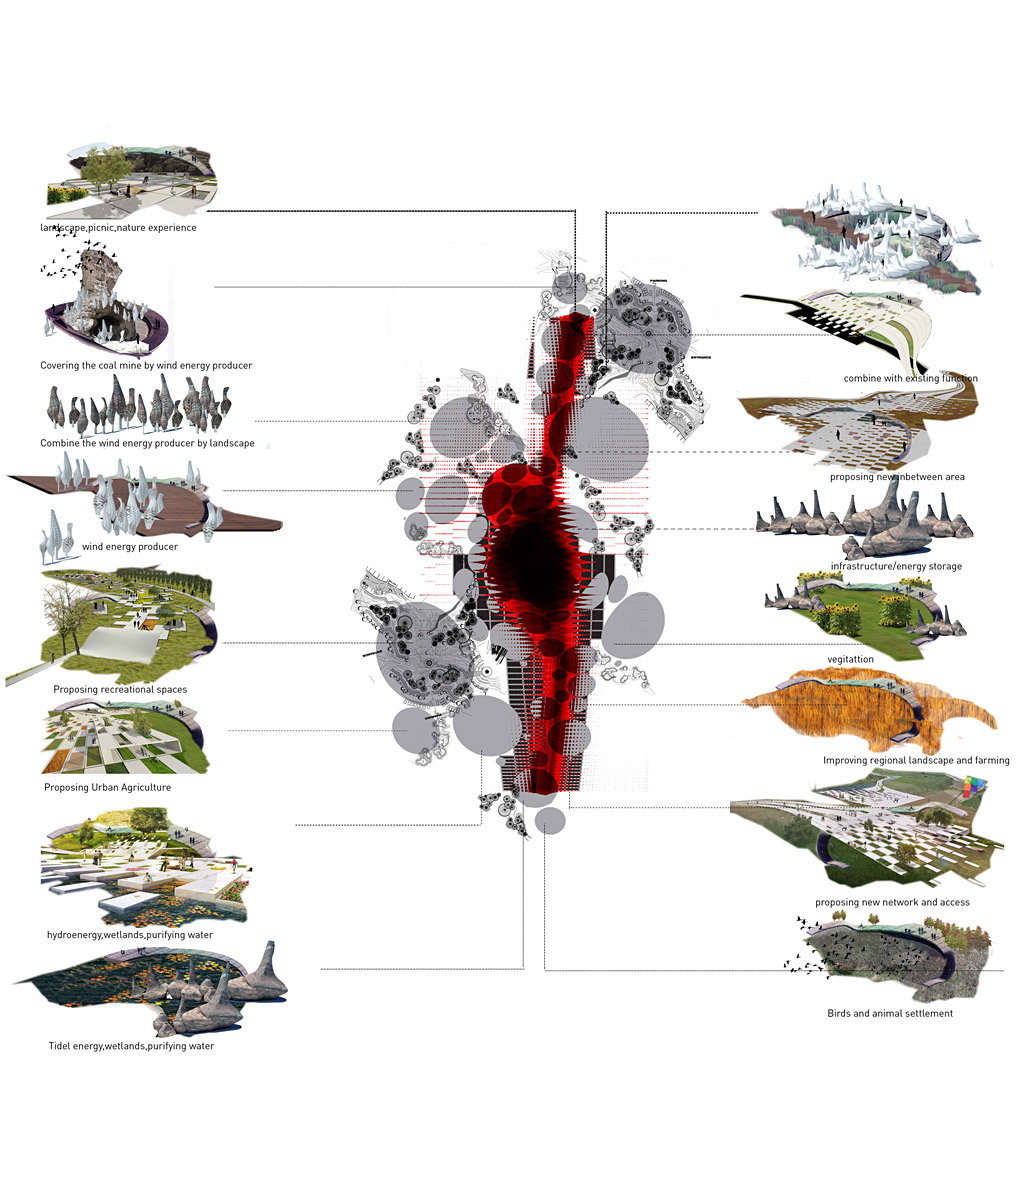 Honorable Mention: Networked Ecologies: Rethinking Remediation